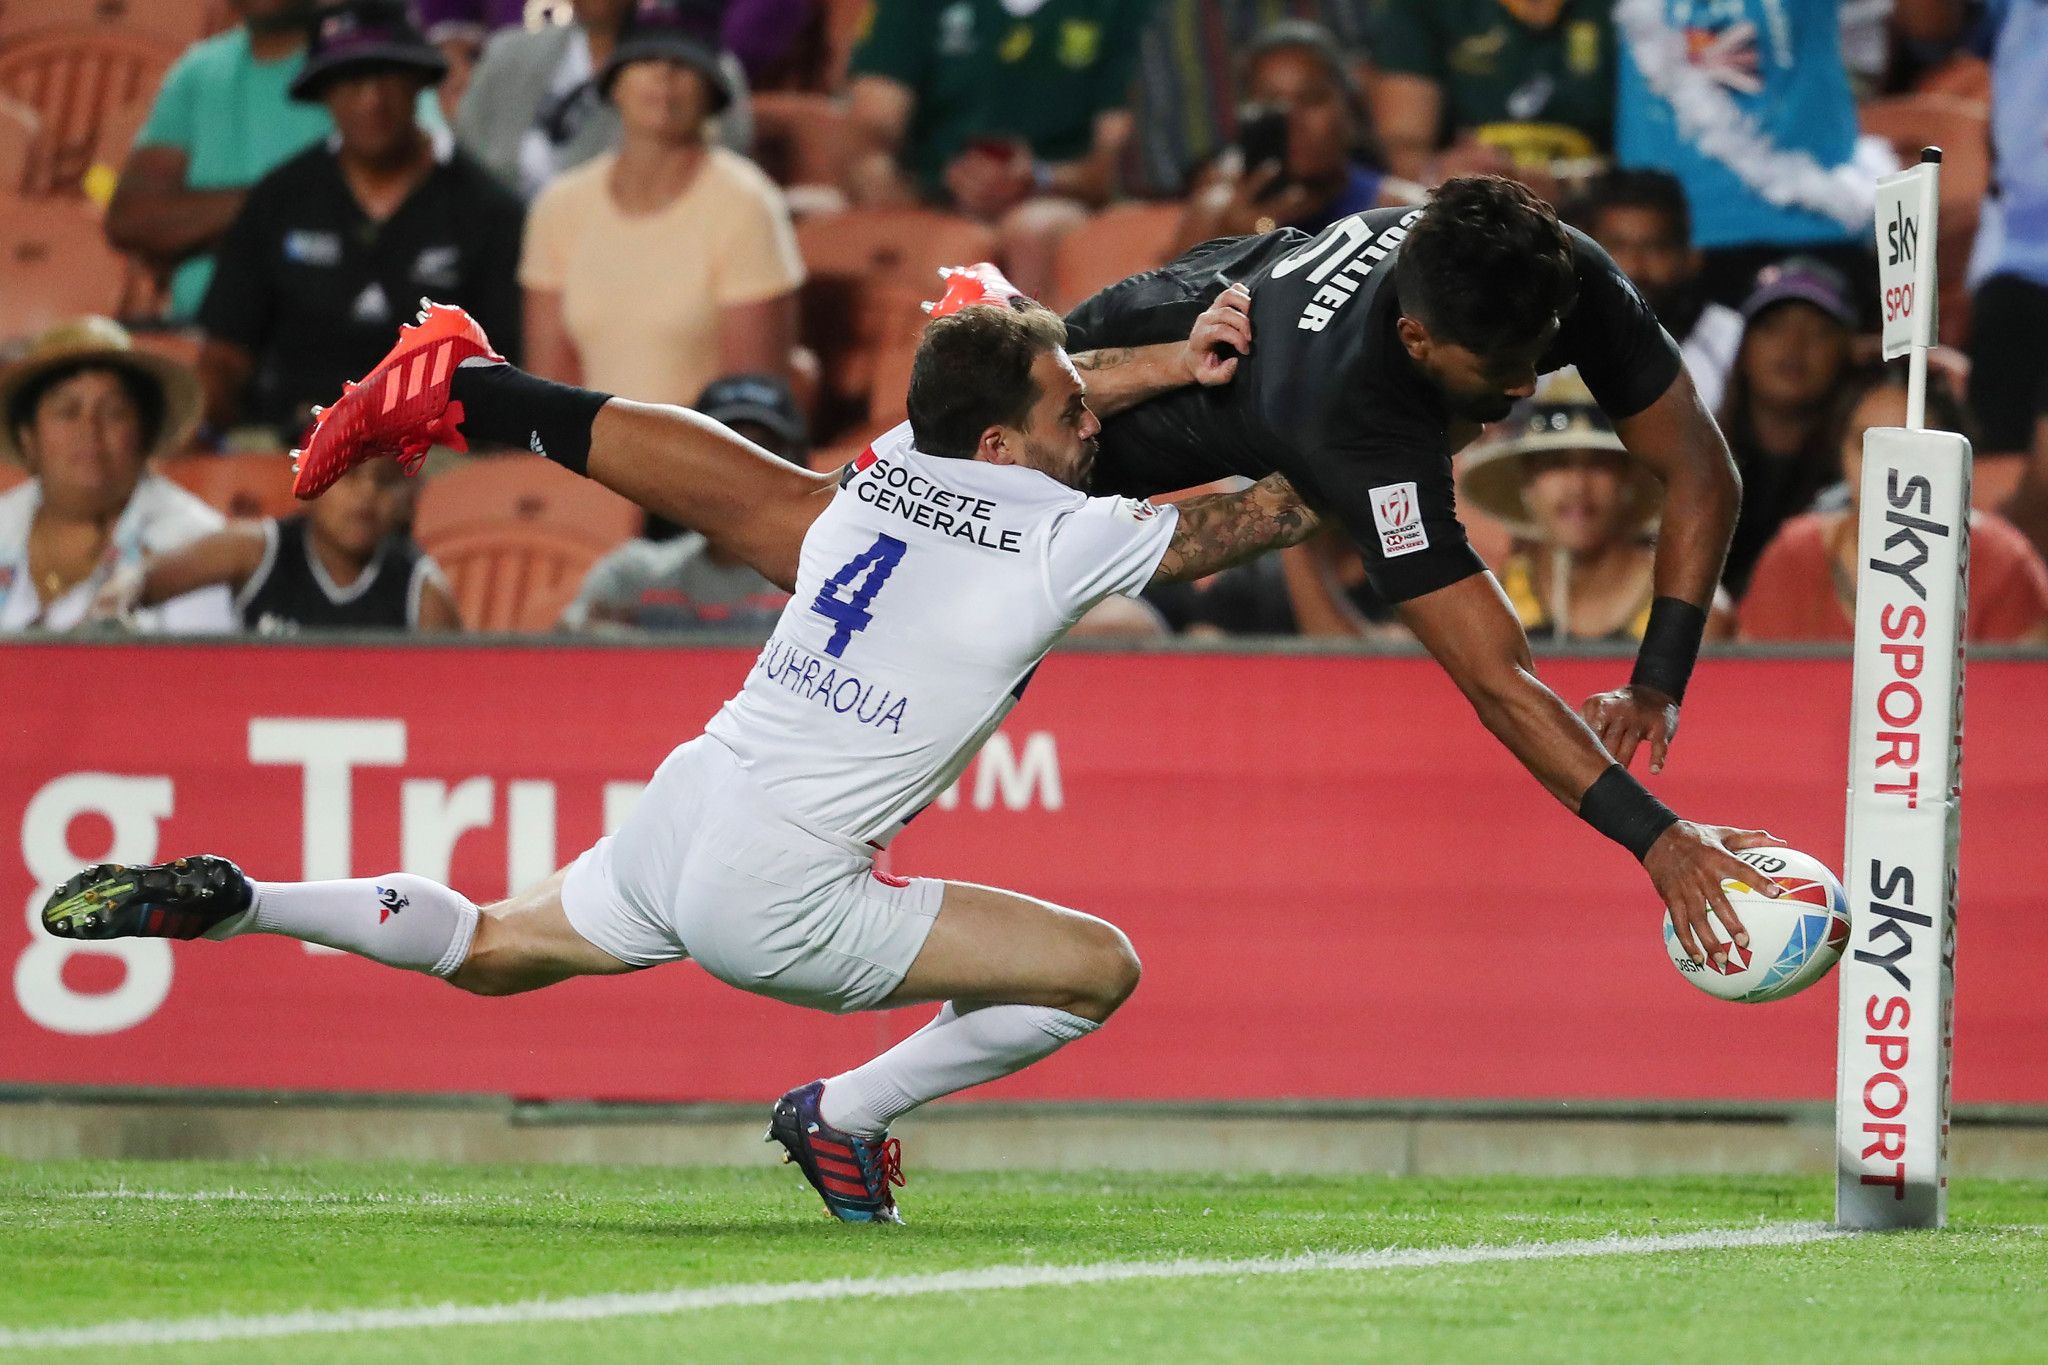 New Zealand crowned champions in home leg of men's World Rugby Sevens Series